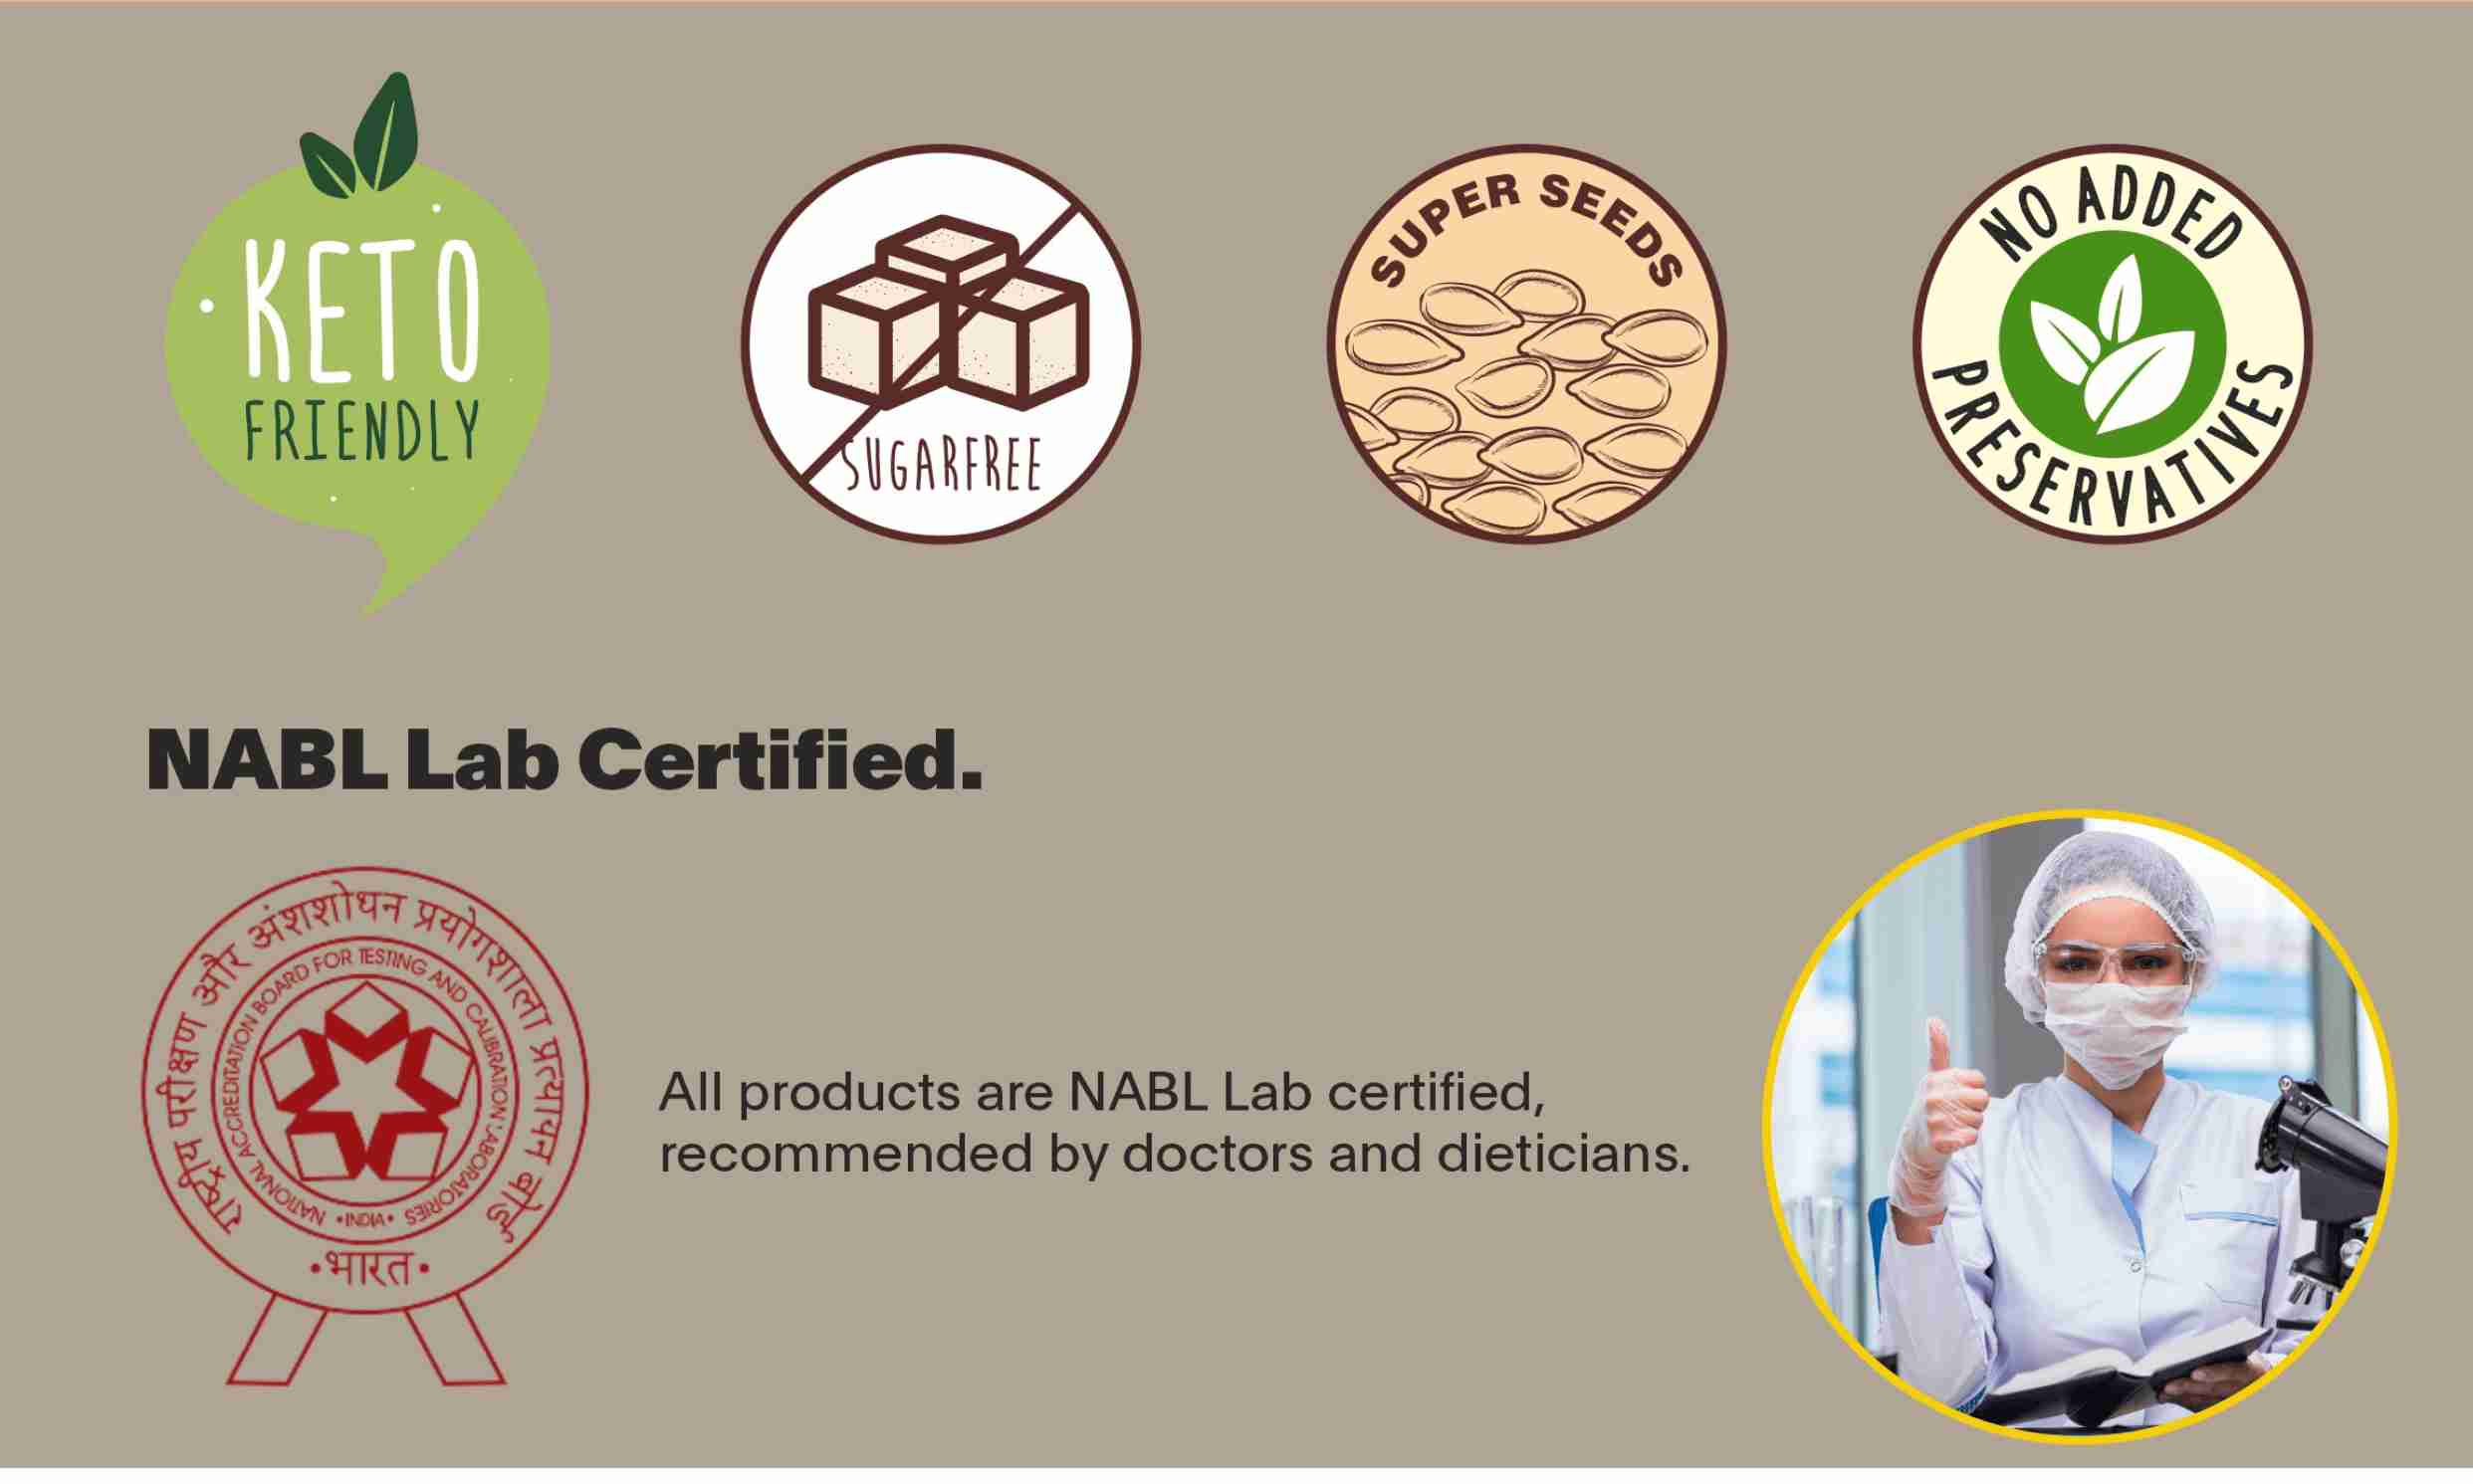 NABL Lab Certified keto Product